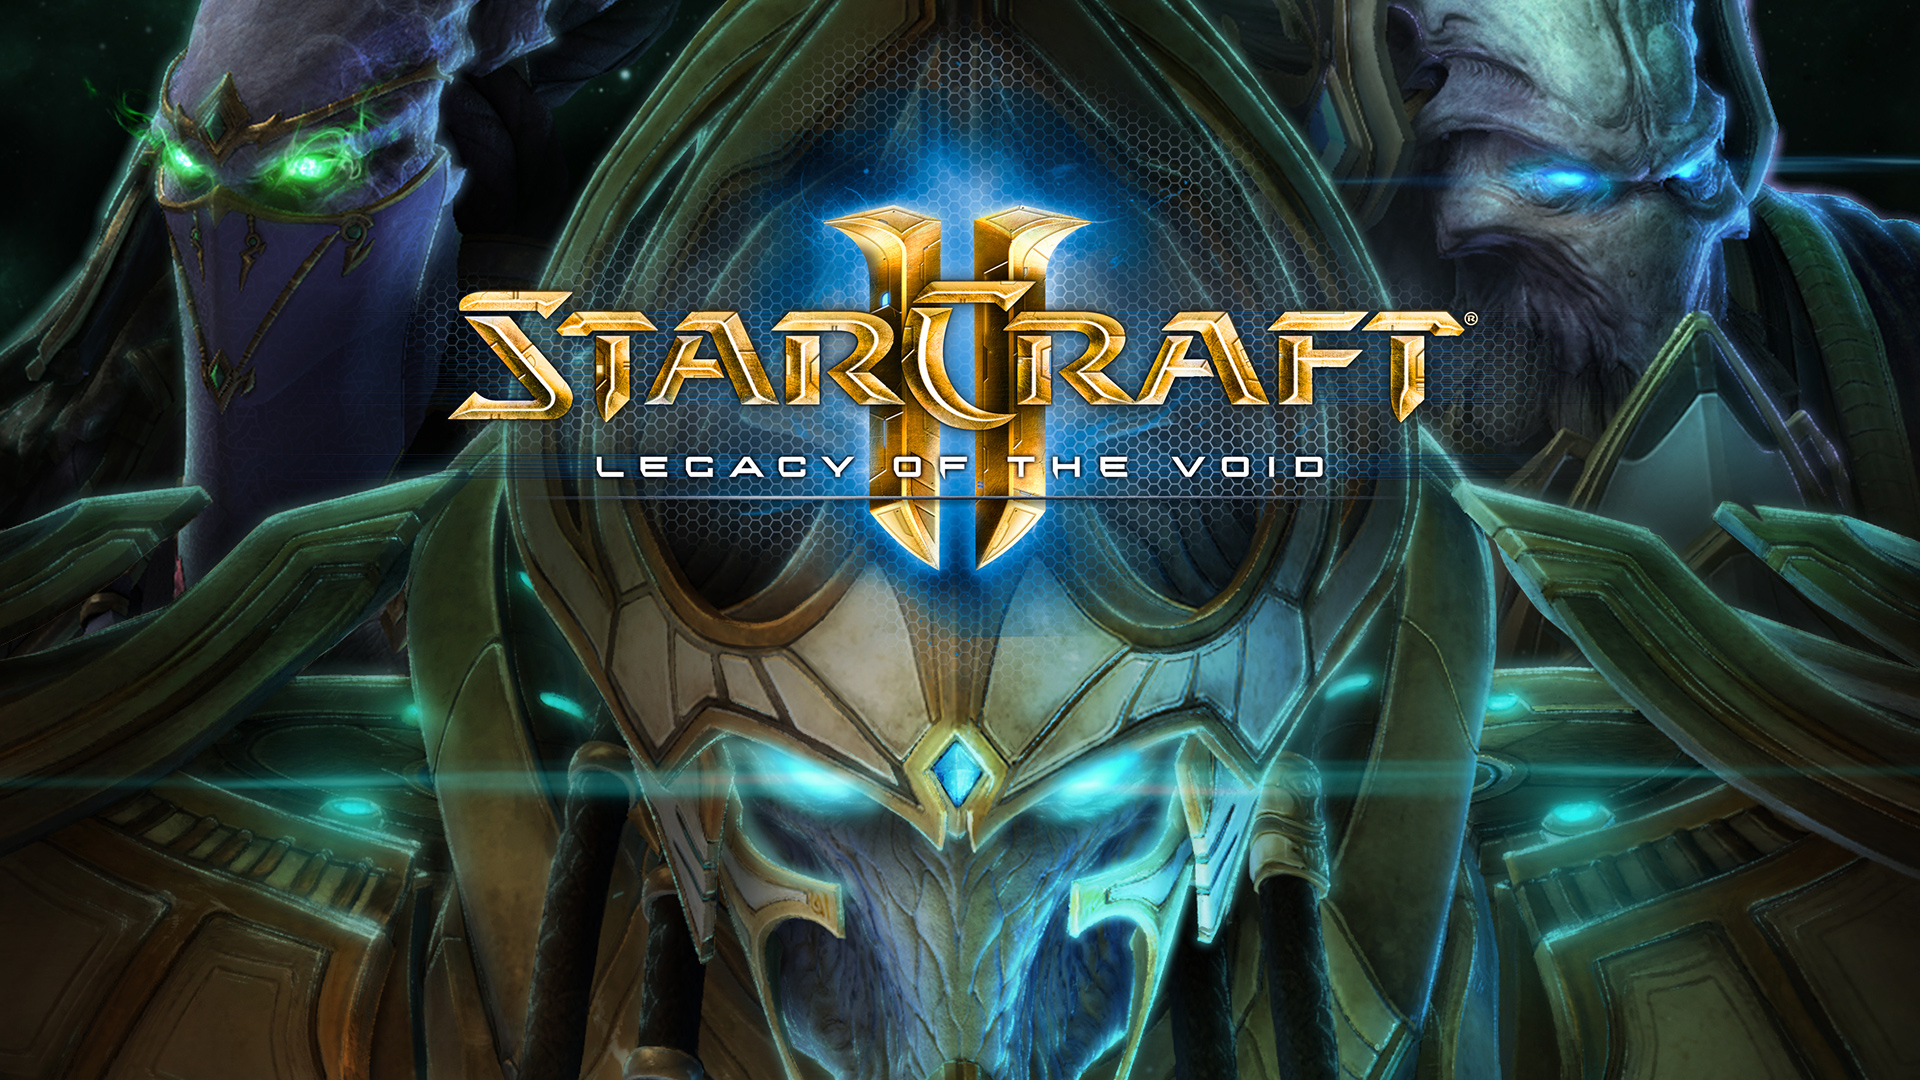 Legacy Of The Void Background Starcraft 2 Legacy Of The Void